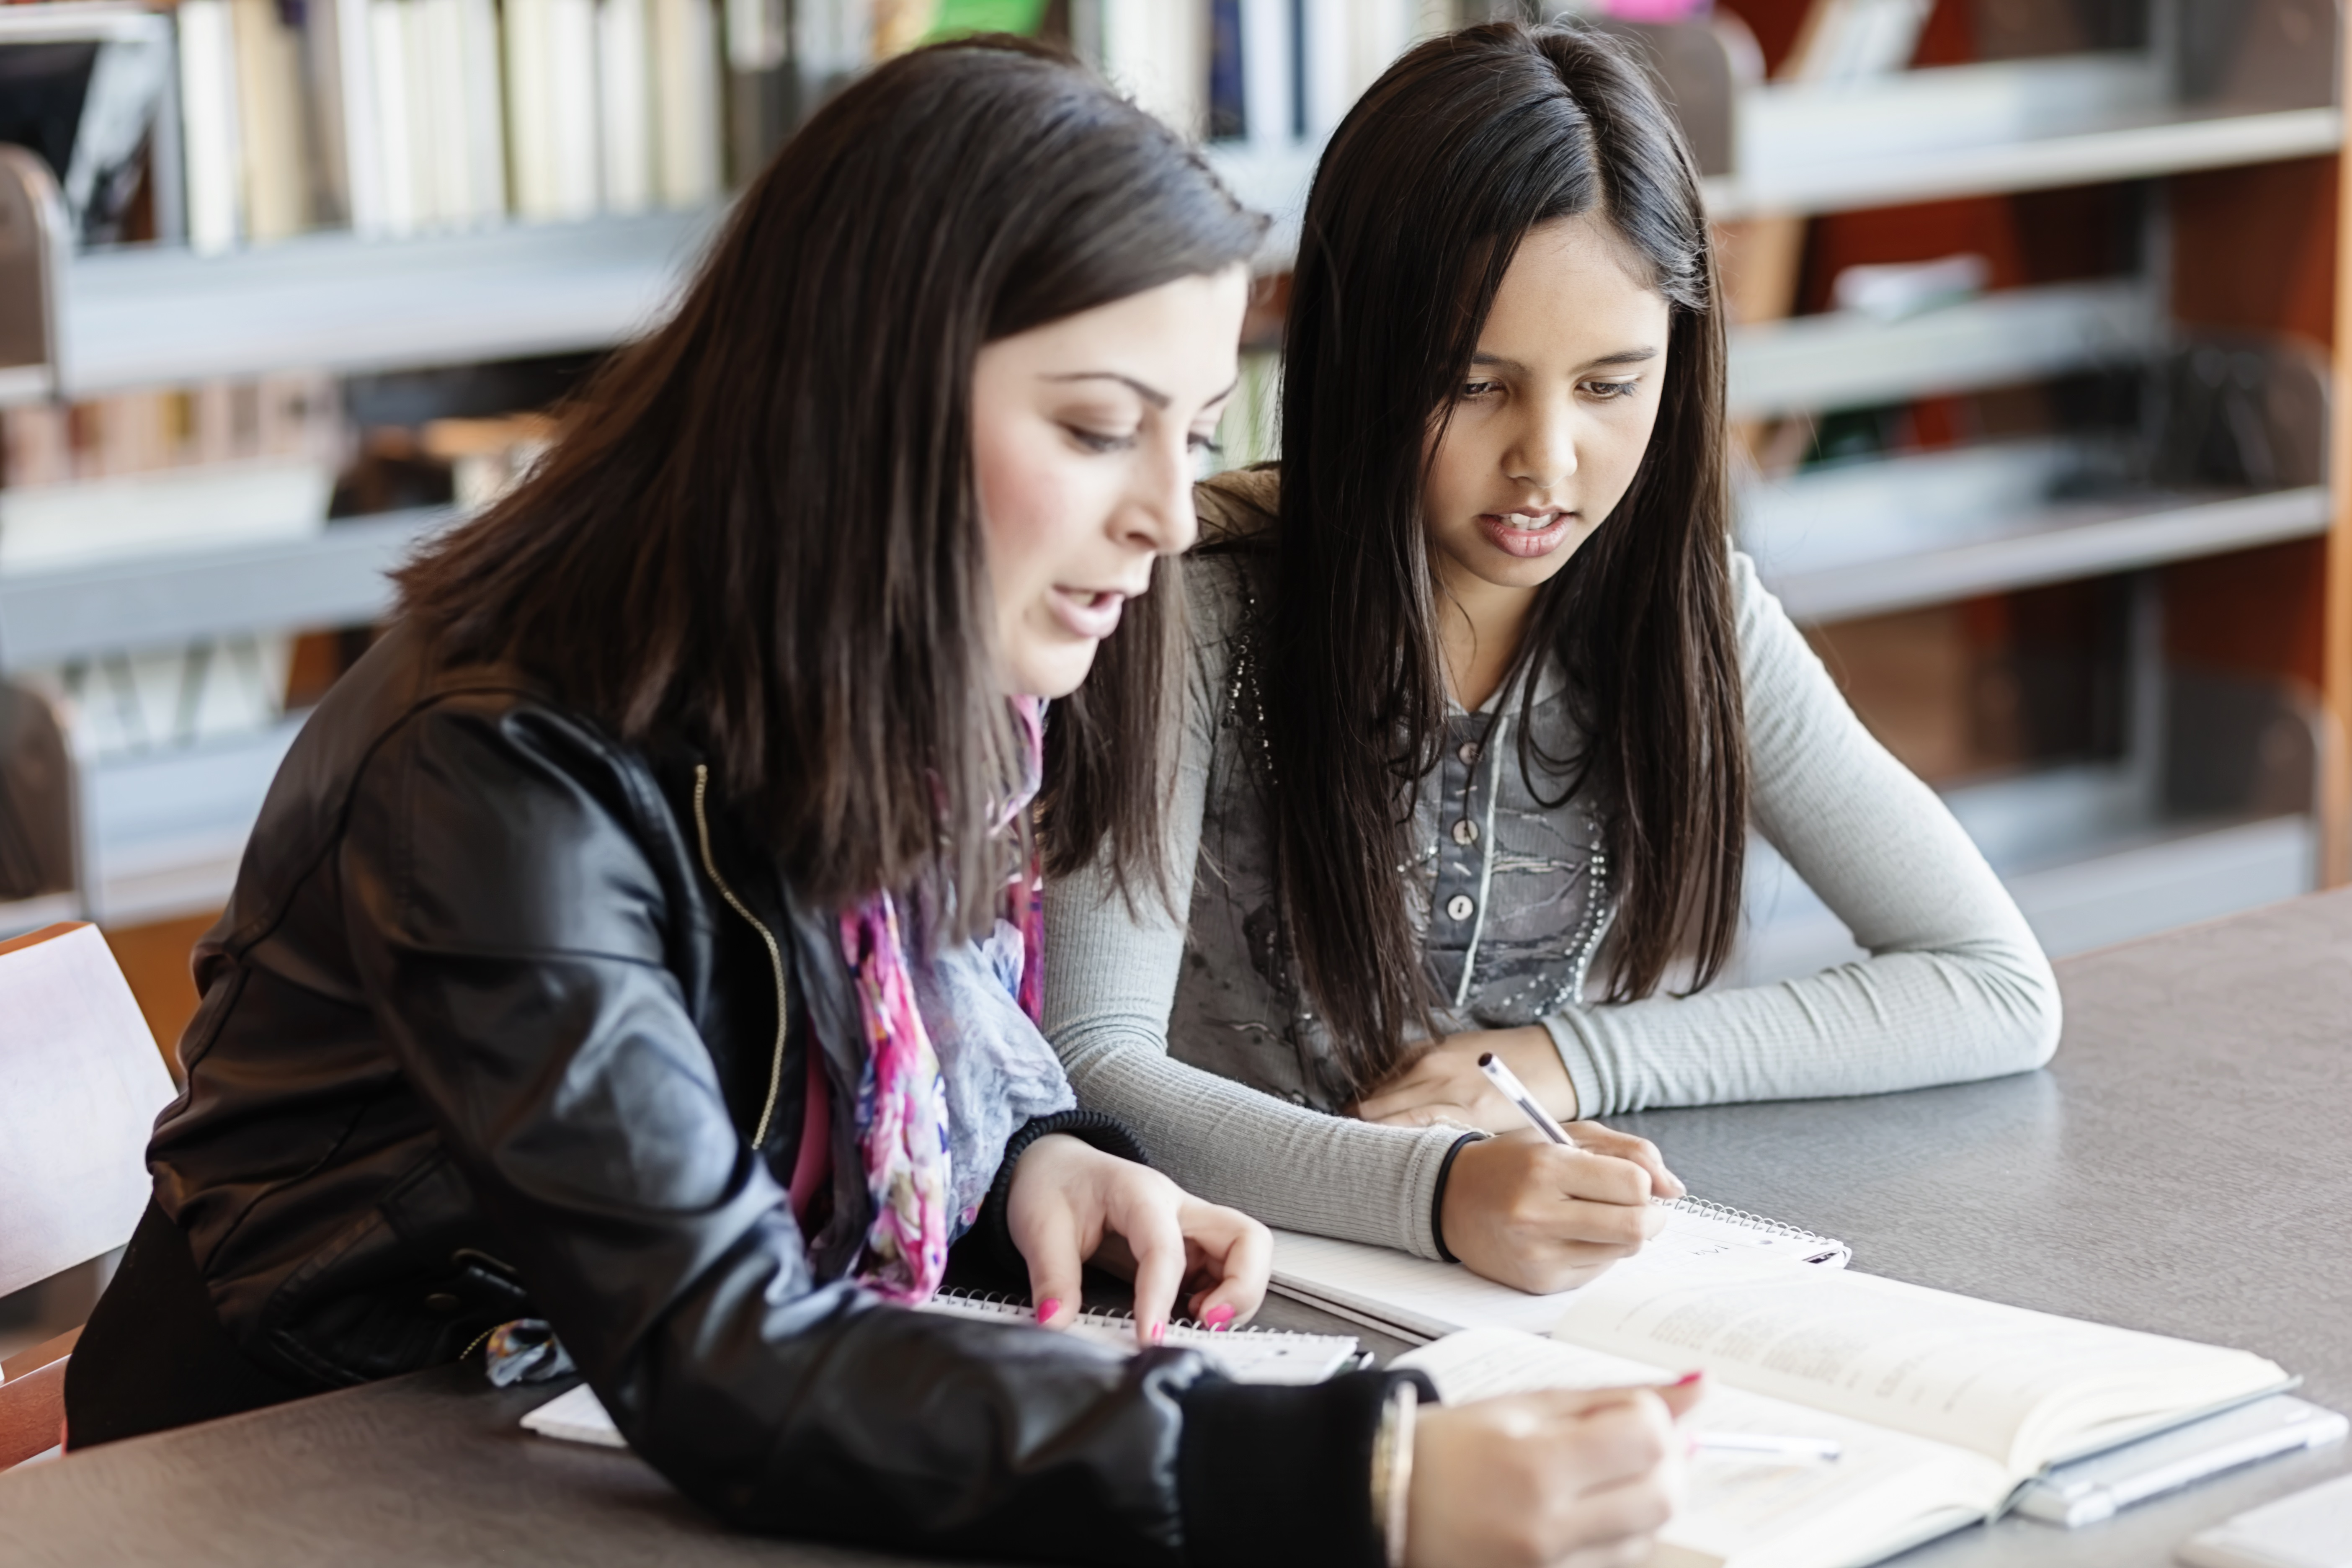 The Tutor Guide: How Much Does a Tutor Cost? - Care.com Community